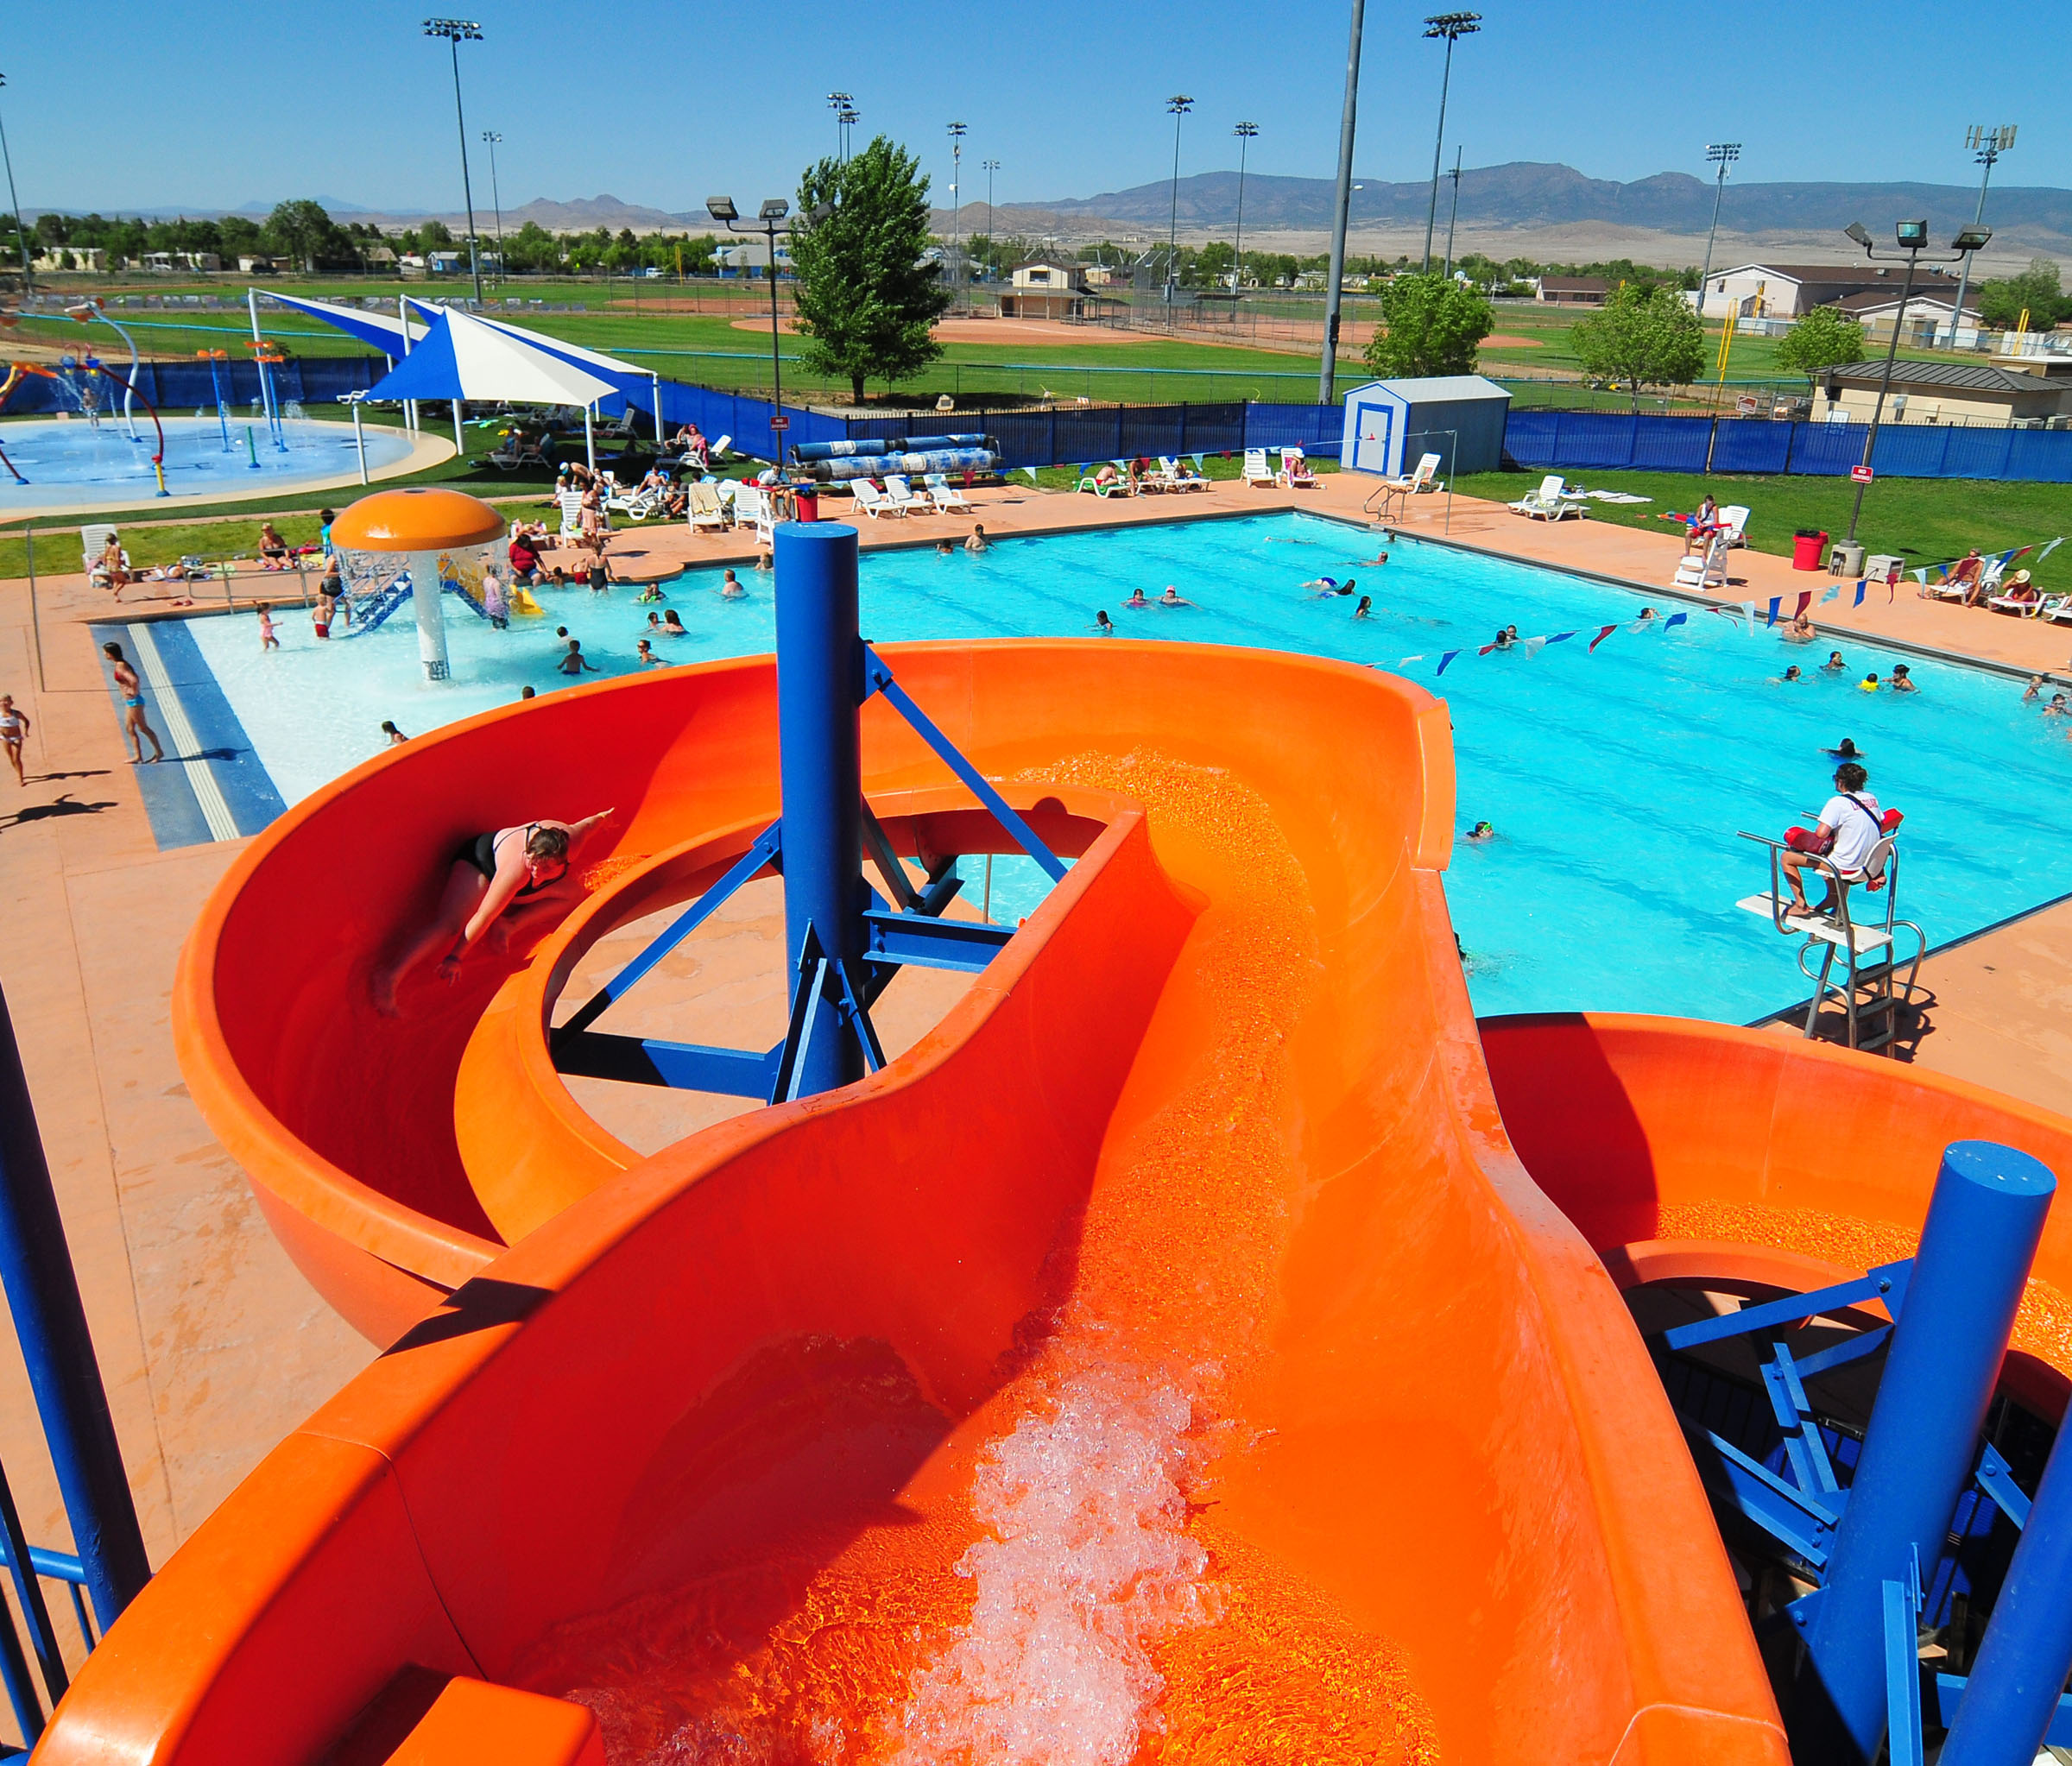 Pool Fees To Increase Over Next Three Years Prescott Valley Tribune Prescott Valley Az